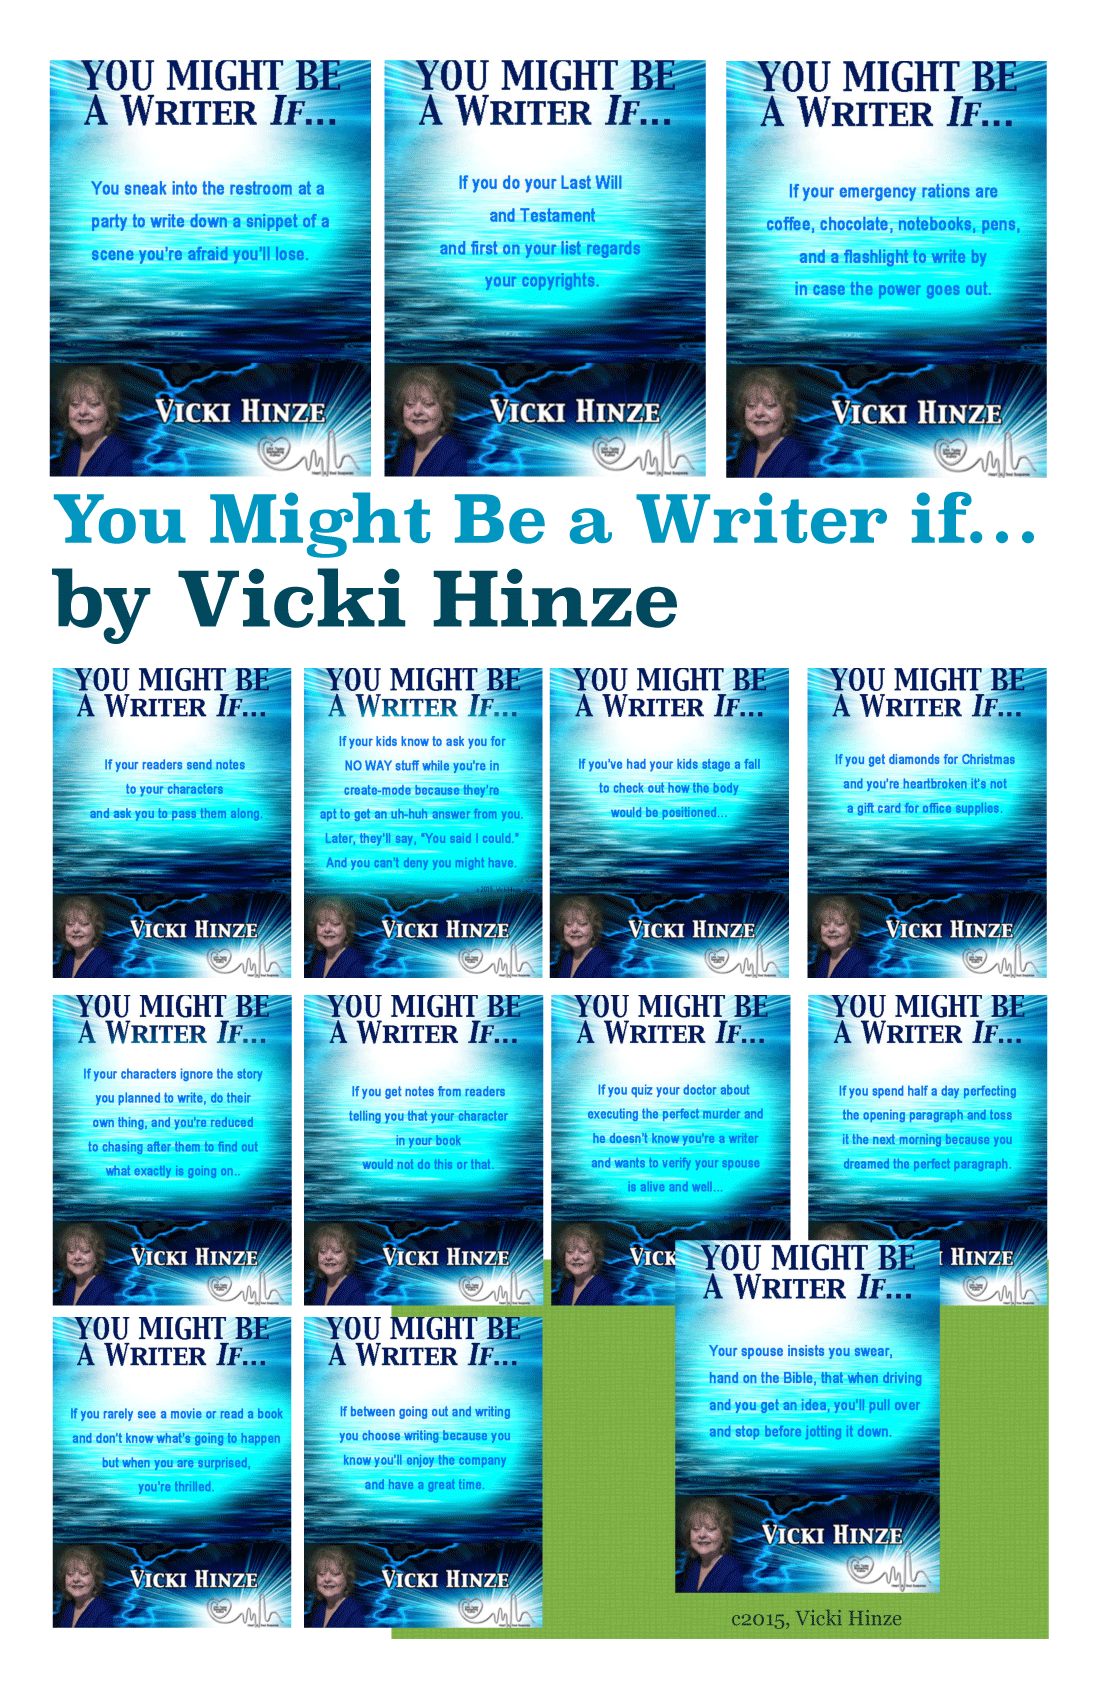 you might be a writer if, vicki hinze, creative writing